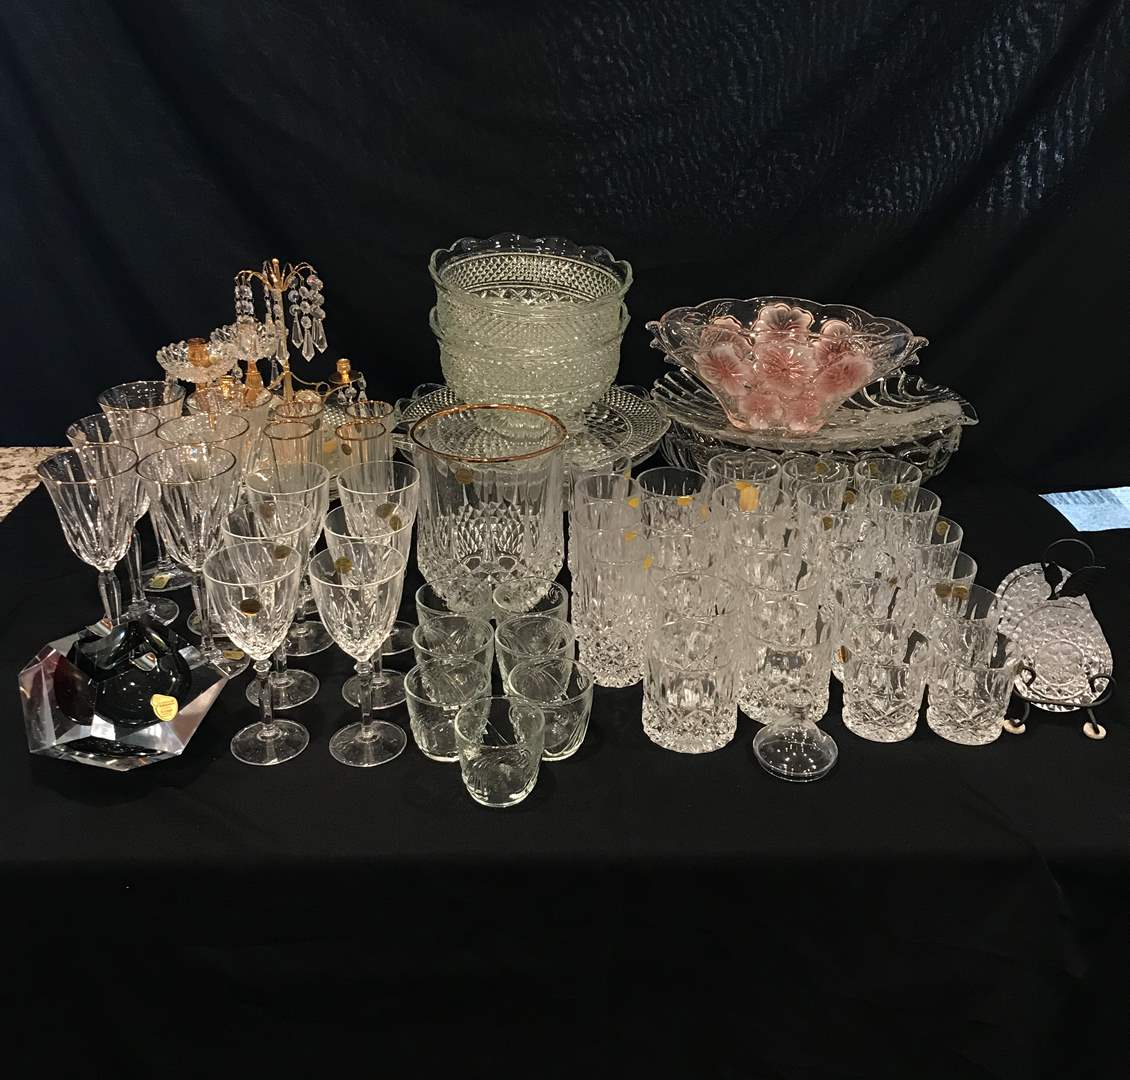 Lot # 210 - Large Selection of Crystal Stemware, Serving Dishes, Bowls, Decor & More..  (main image)